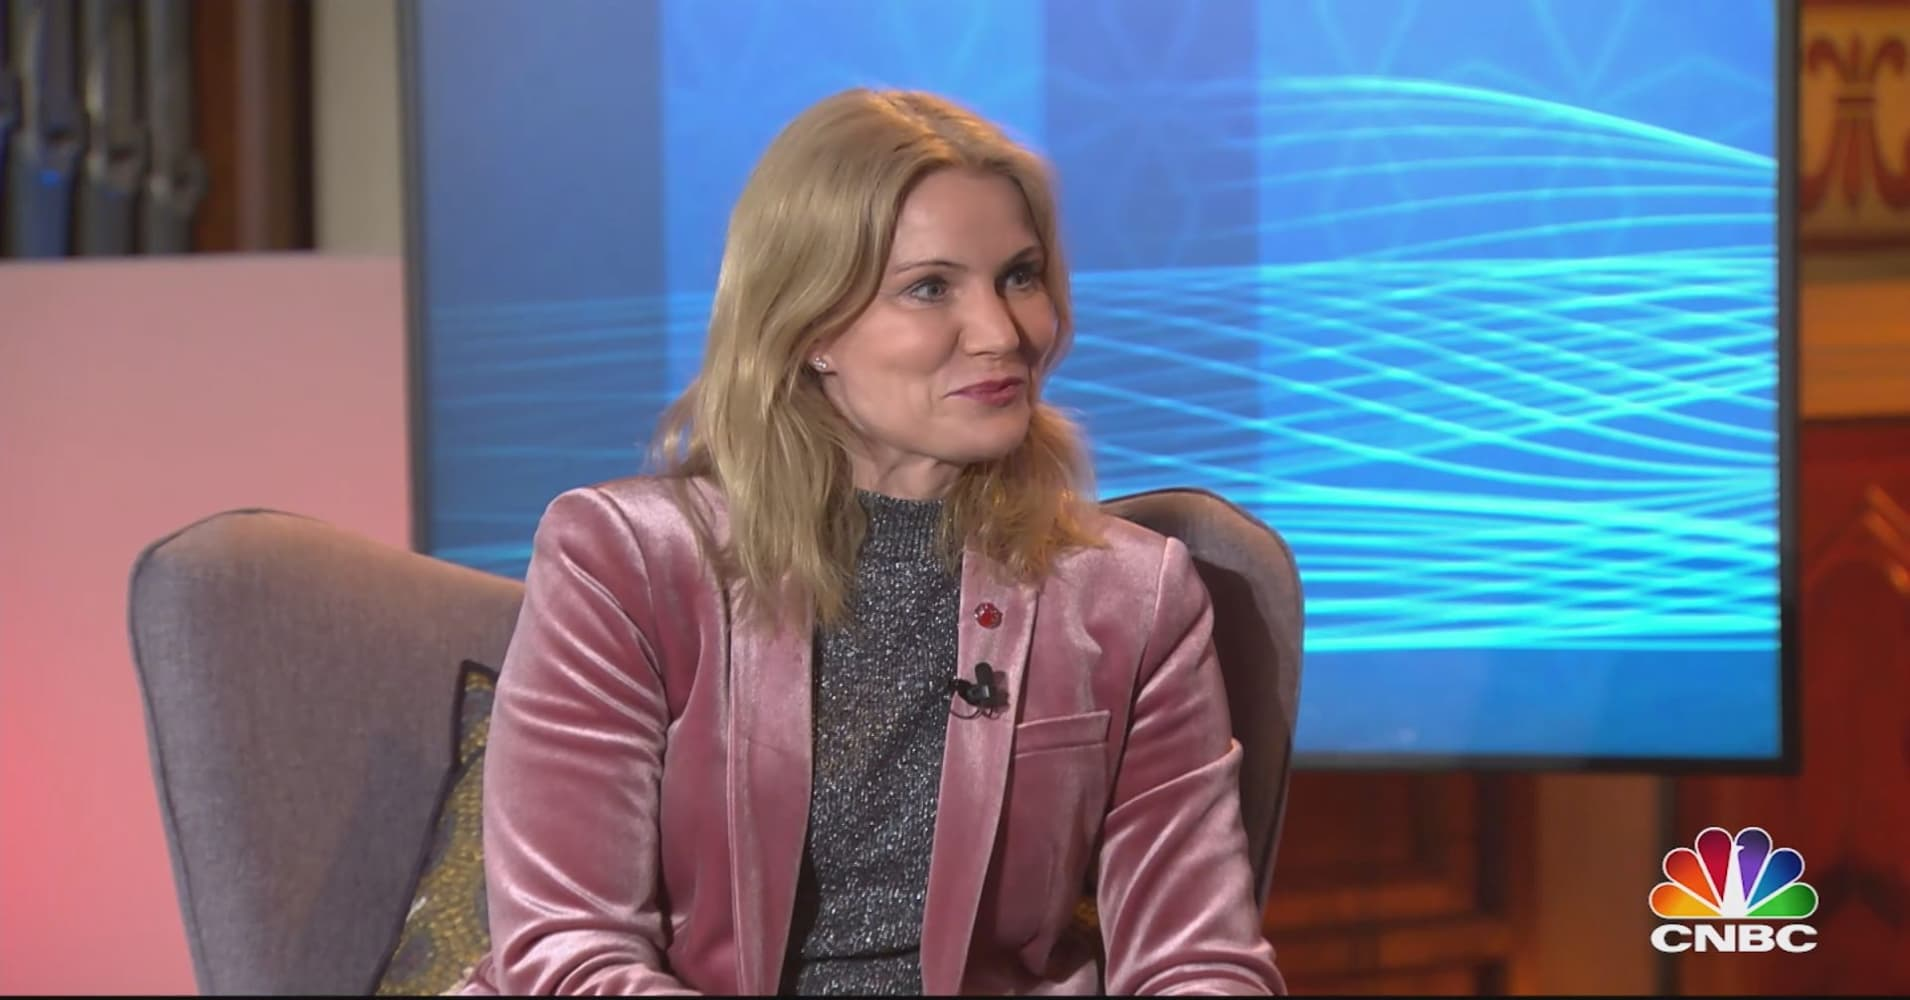 helle thorning smith